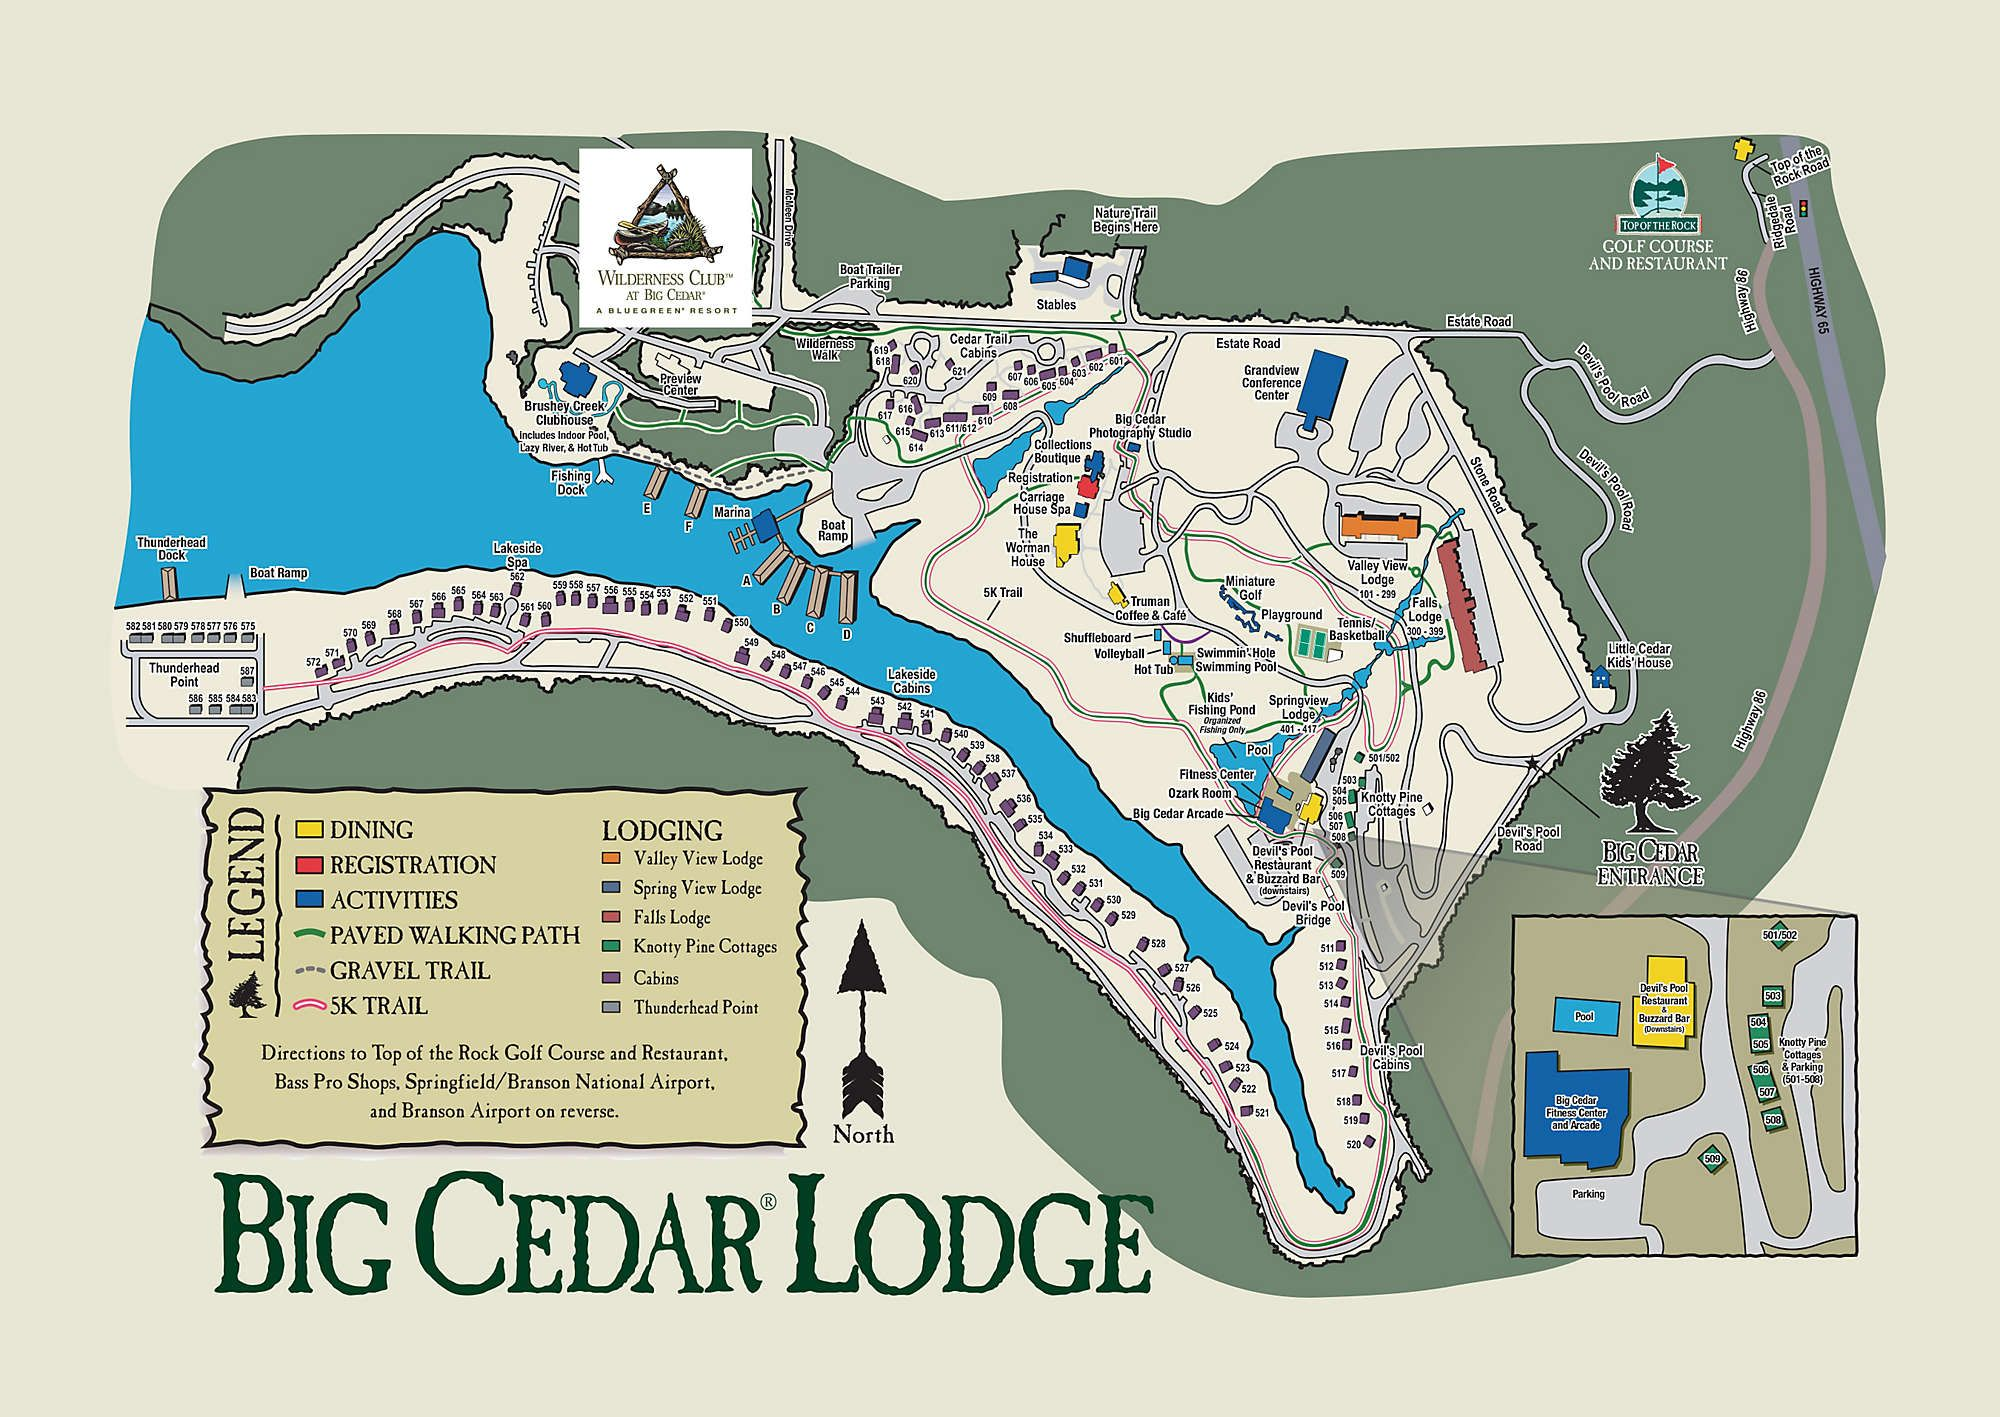 Big Cedar Lodge Map Wilderness Club™ at Big Cedar in 2019 | Vacations and Conferences